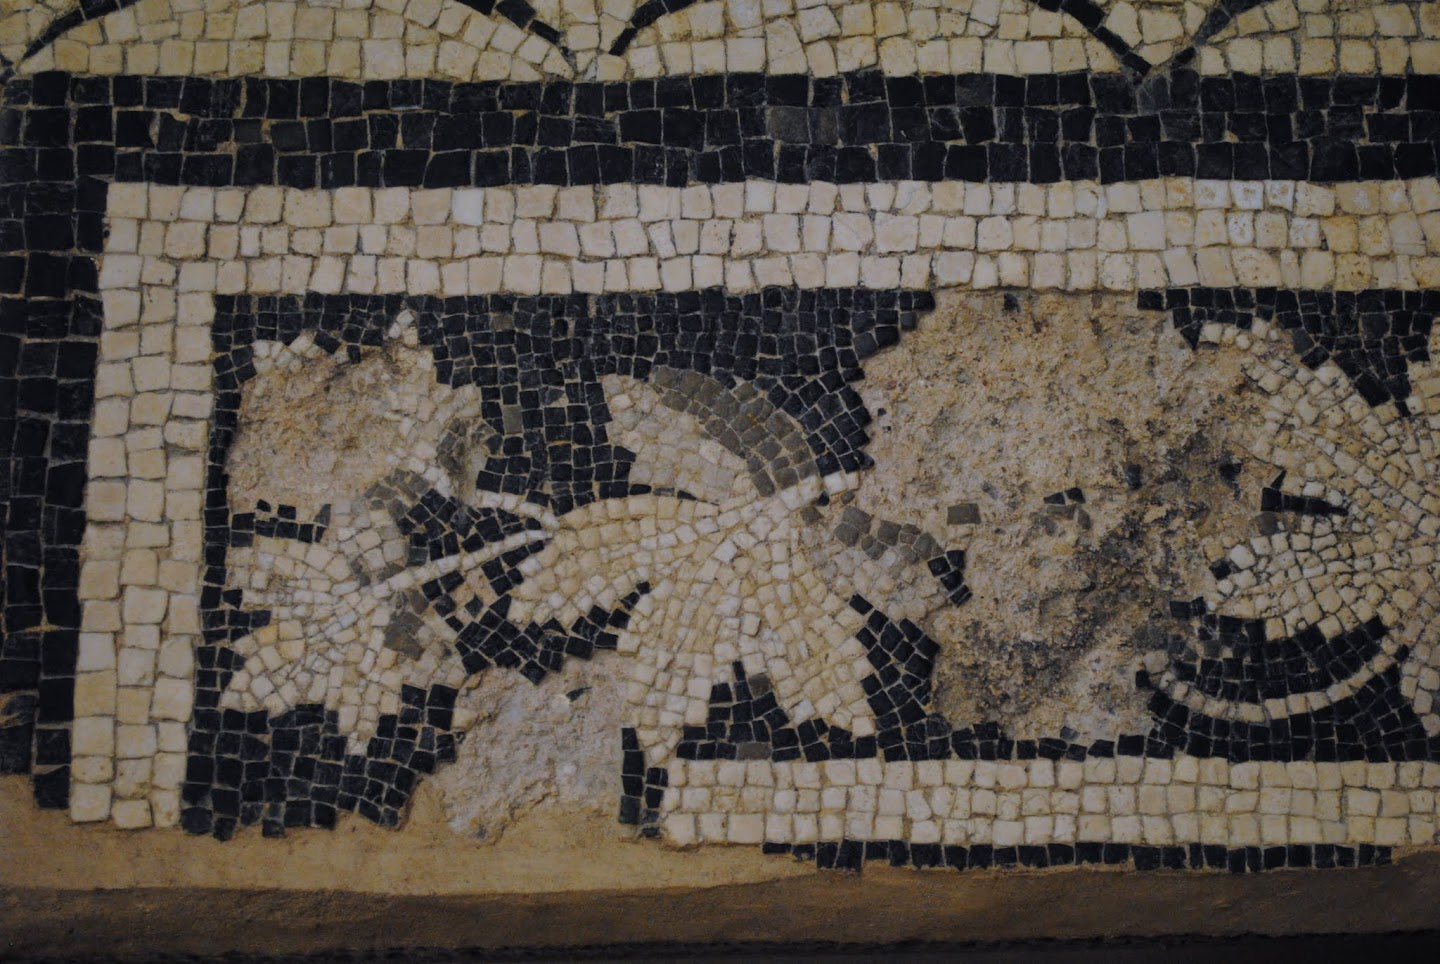 Archaeological Museum Mosaics & Antiquities